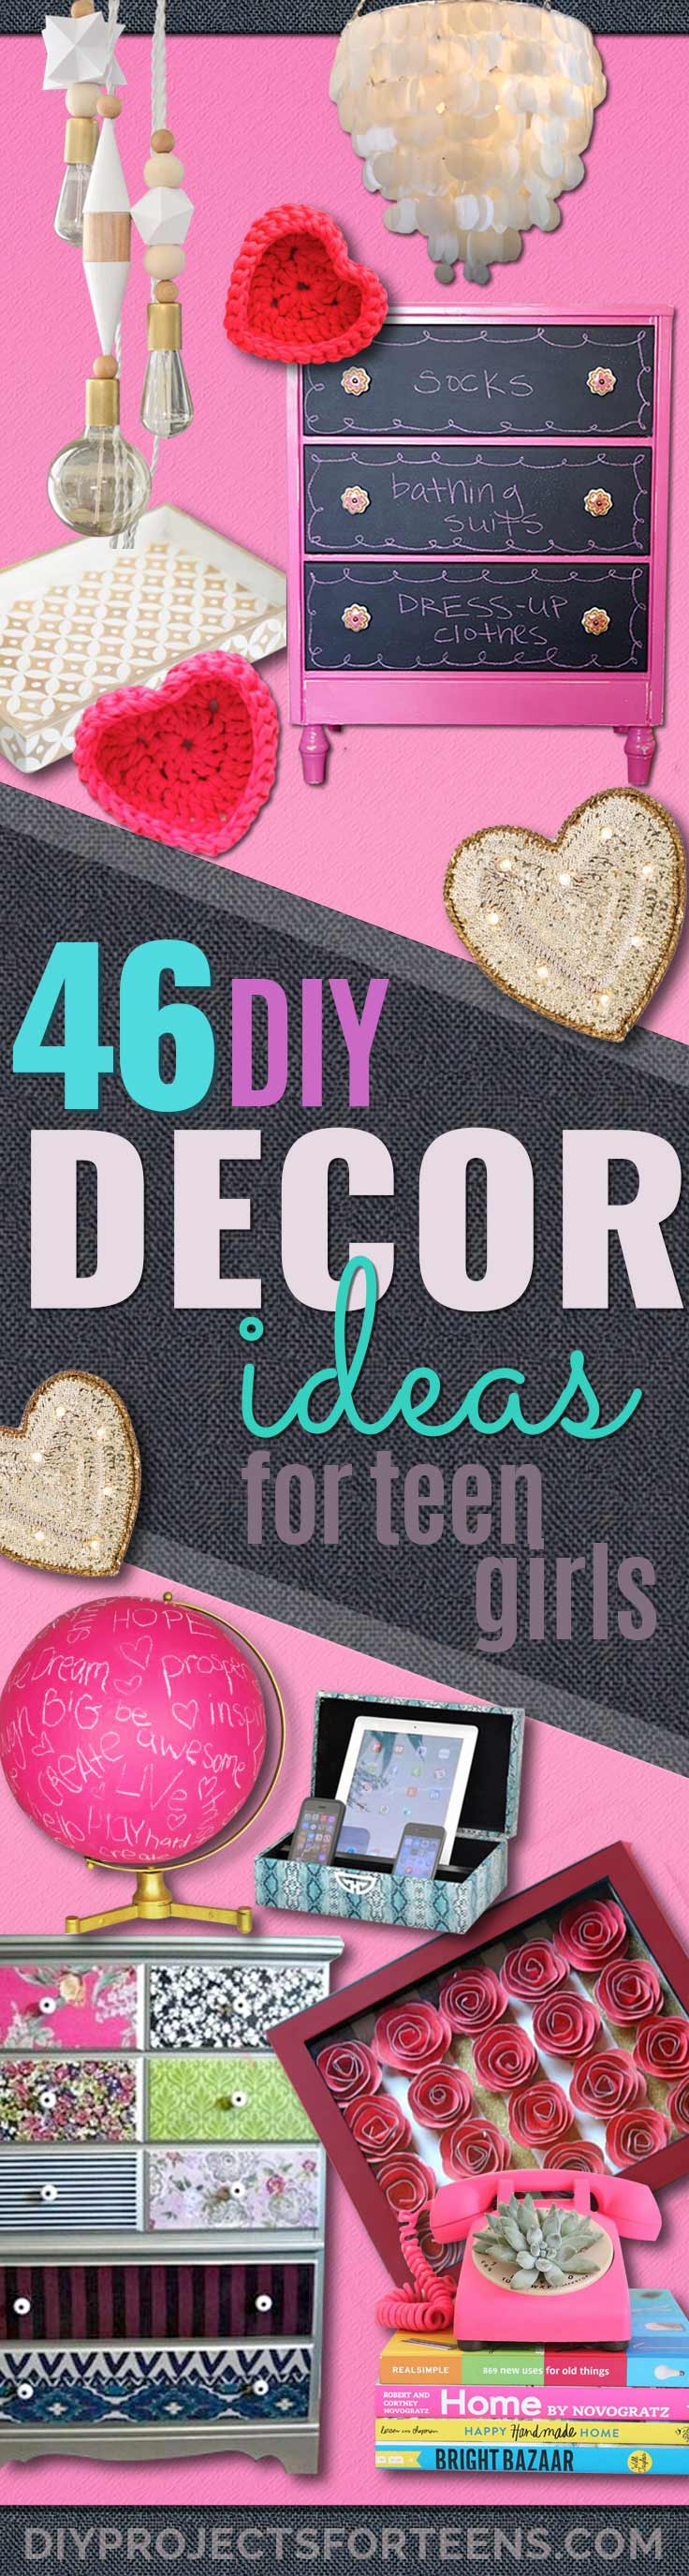 Bedroom decor ideas for girls - Diy Teen Room Decor Ideas For Girls Fun Crafts And Decor For Tweens Cool